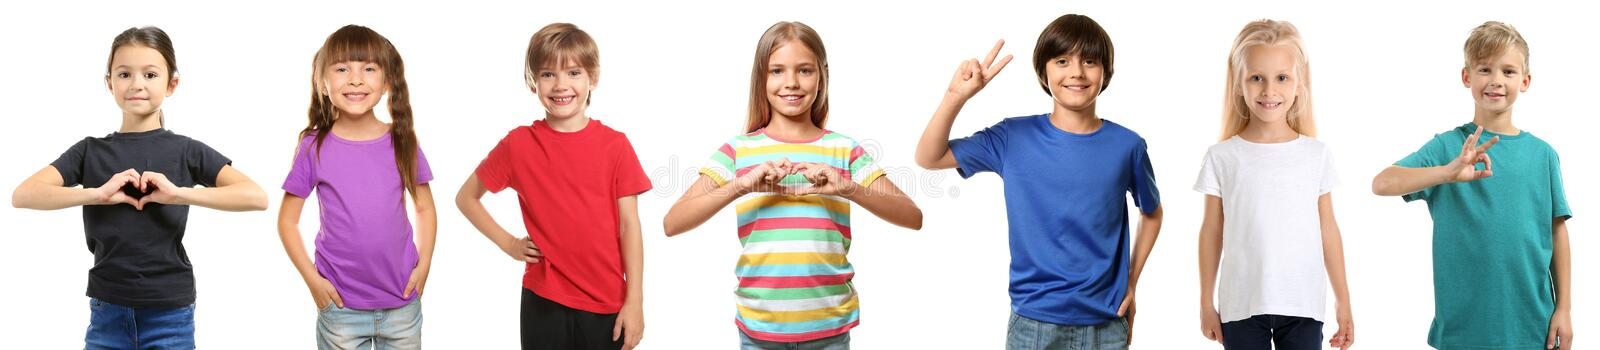 Cute children in different t-shirts on white background royalty free stock images